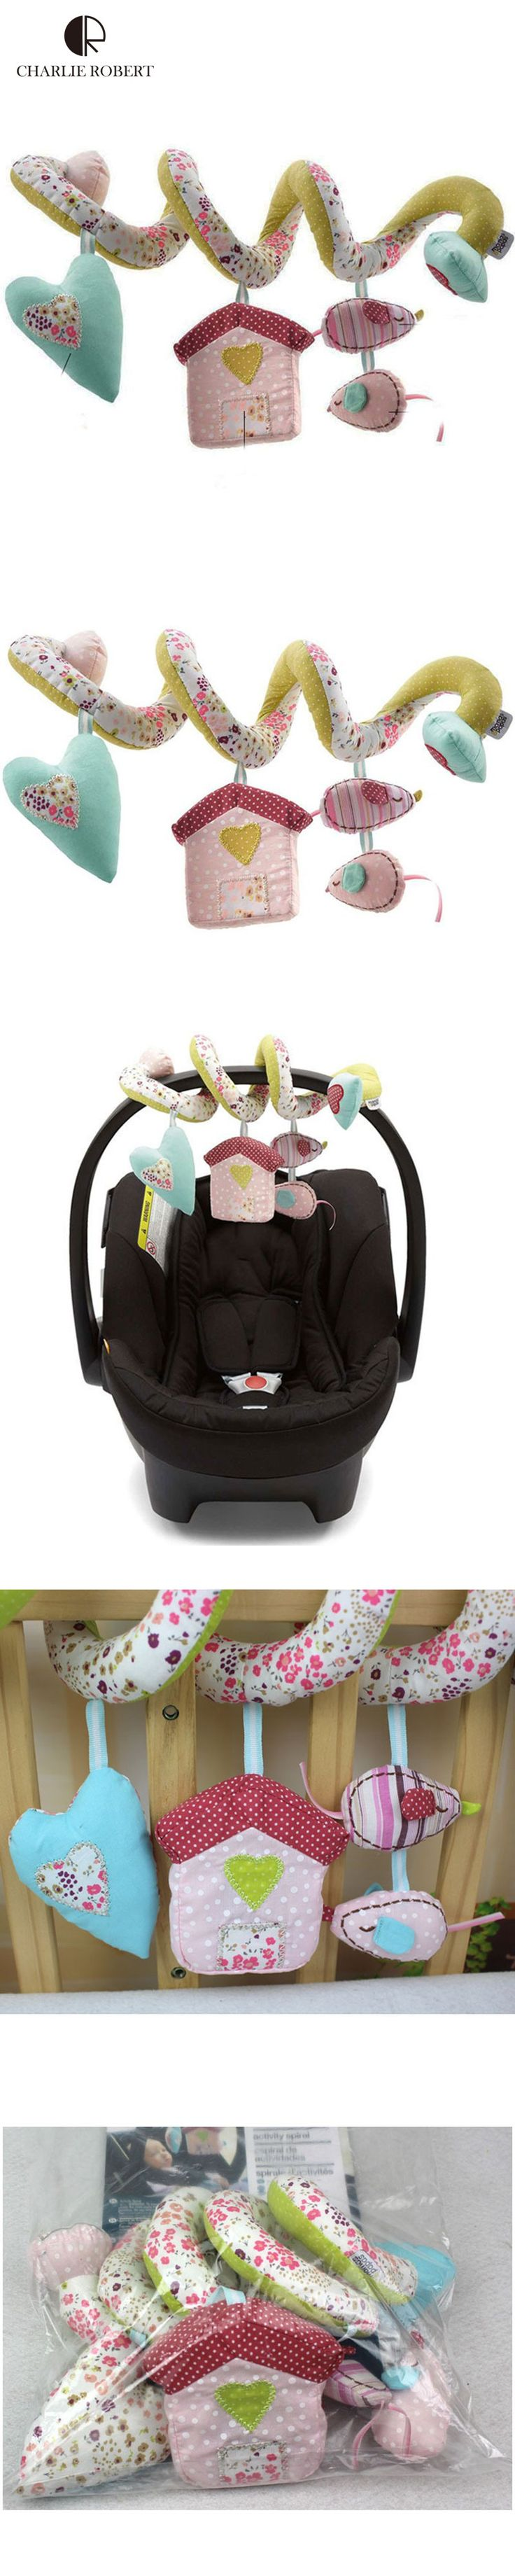 Baby bed like car seat - Vintage Flower Baby Toys Brand Baby Rattle Newborn Mobile Baby Music Rattles Baby Cot Beds Rattle